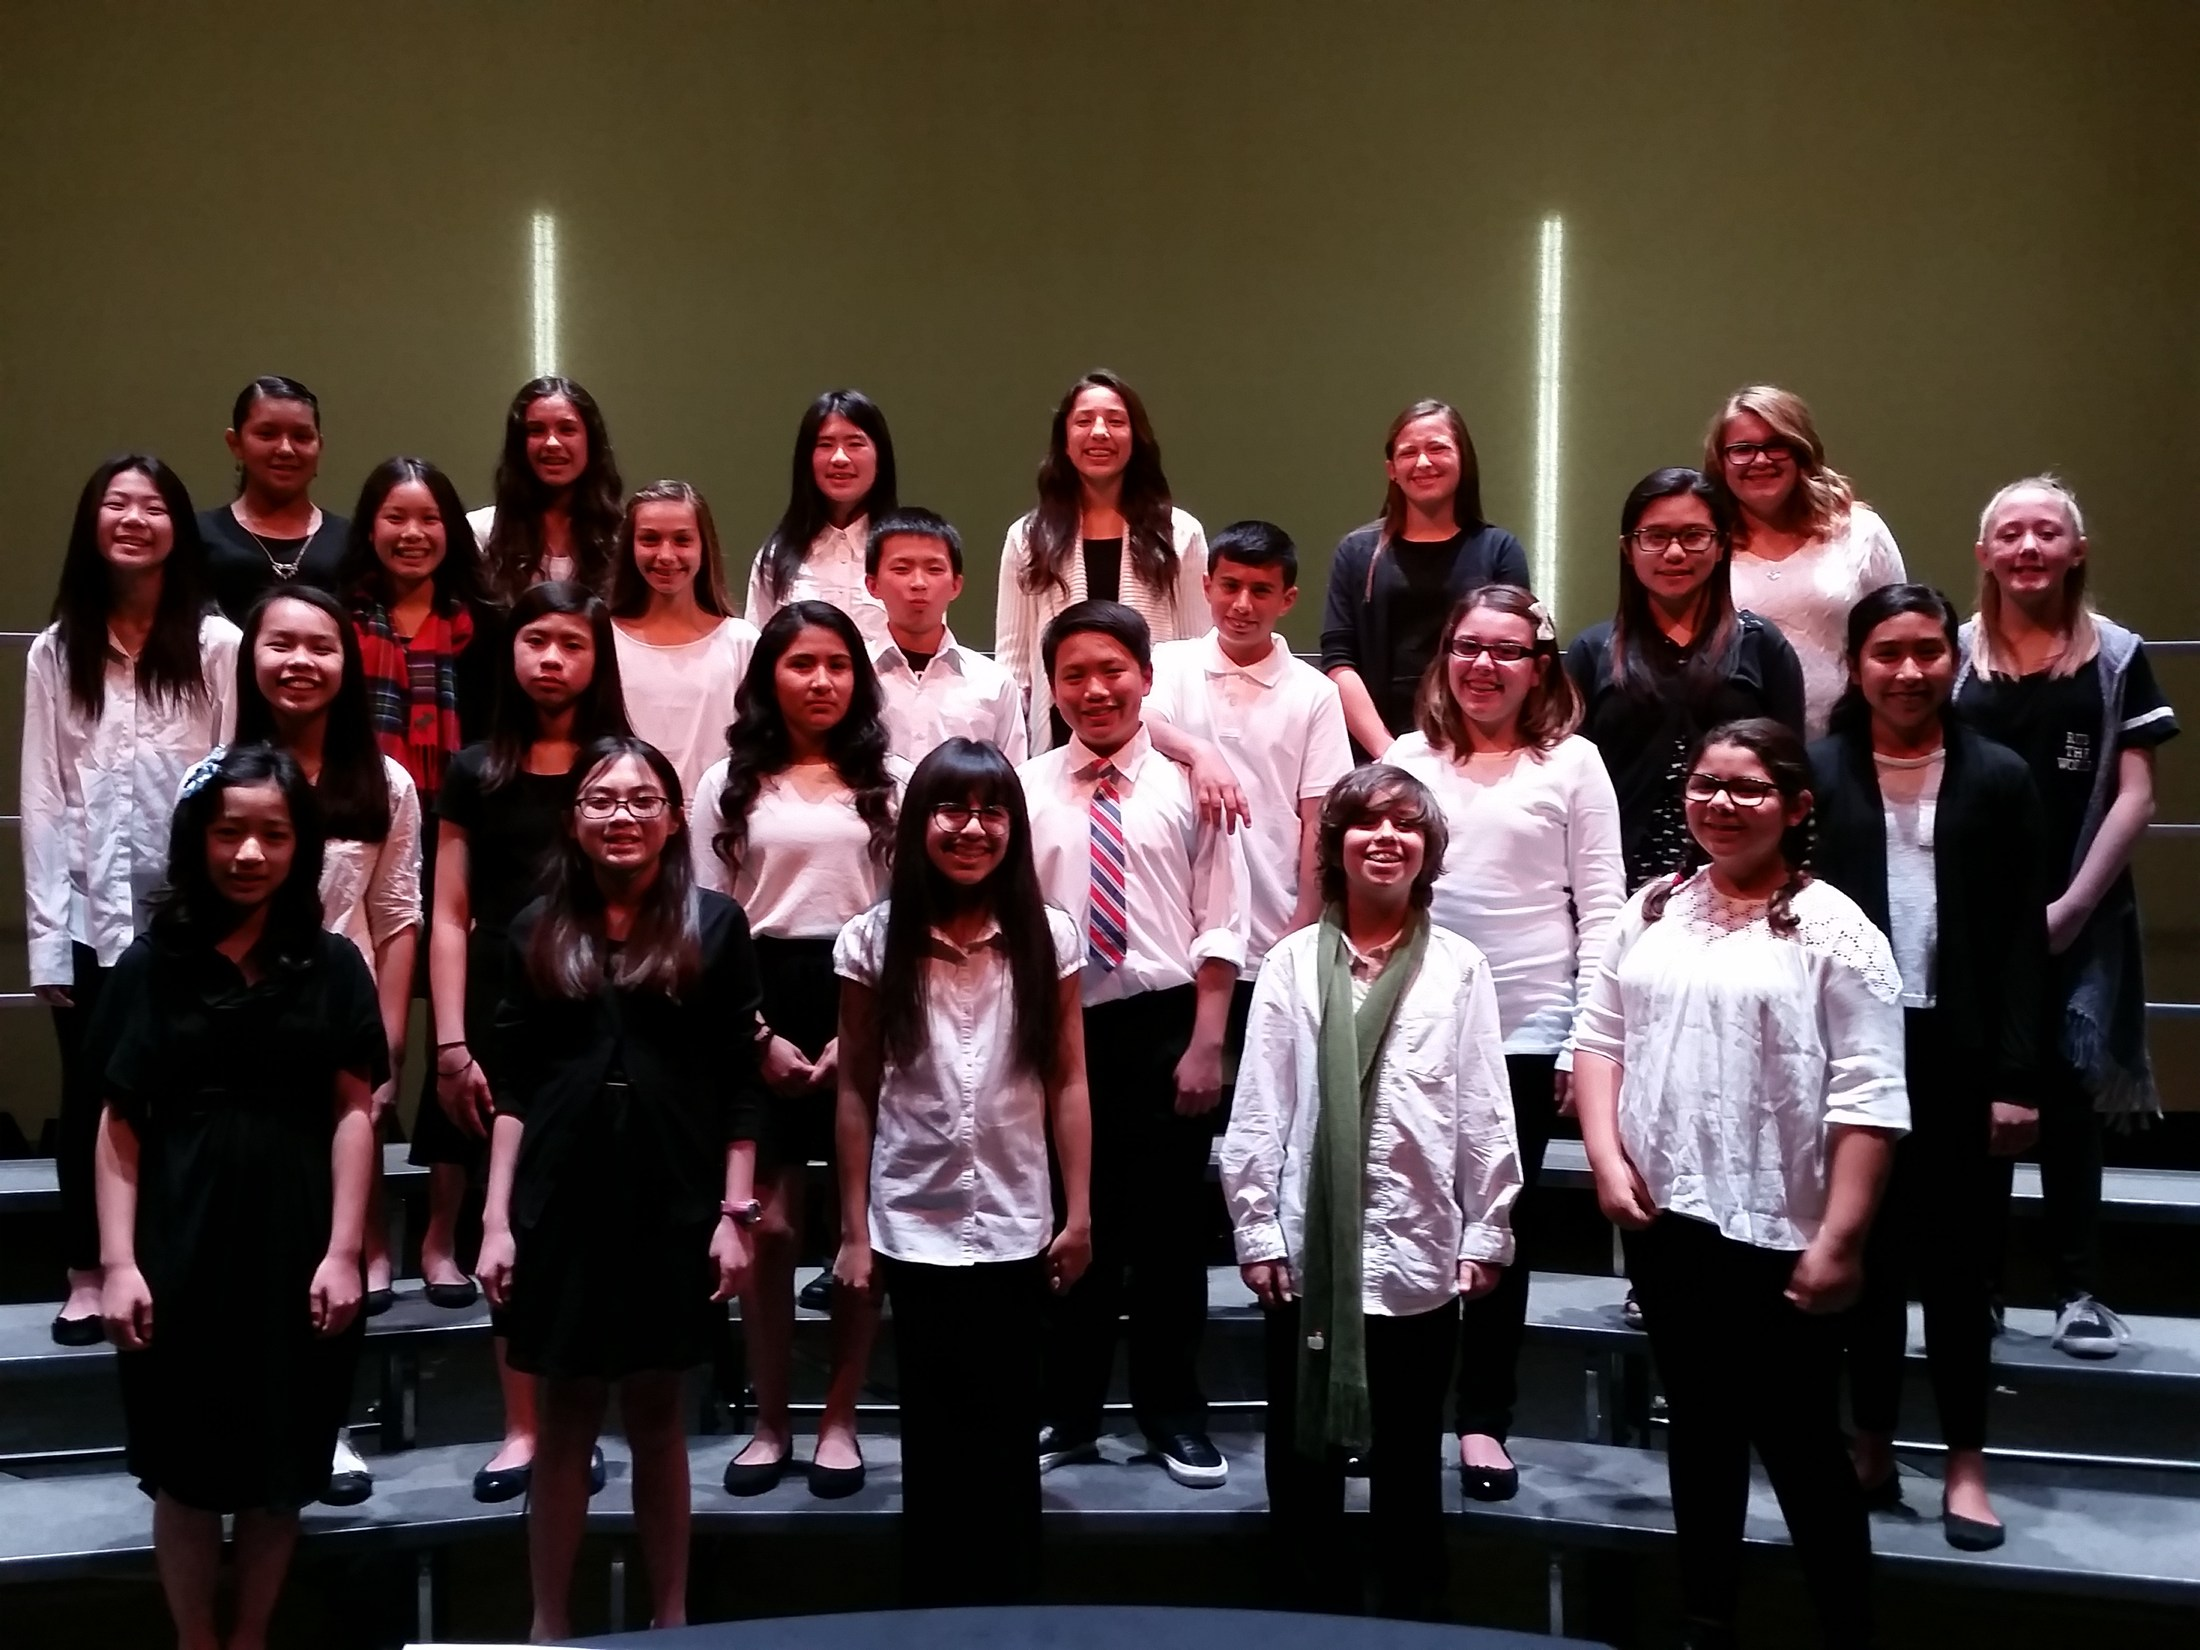 Jefferson Middle School Choral Program – Rachel Chew – Jefferson